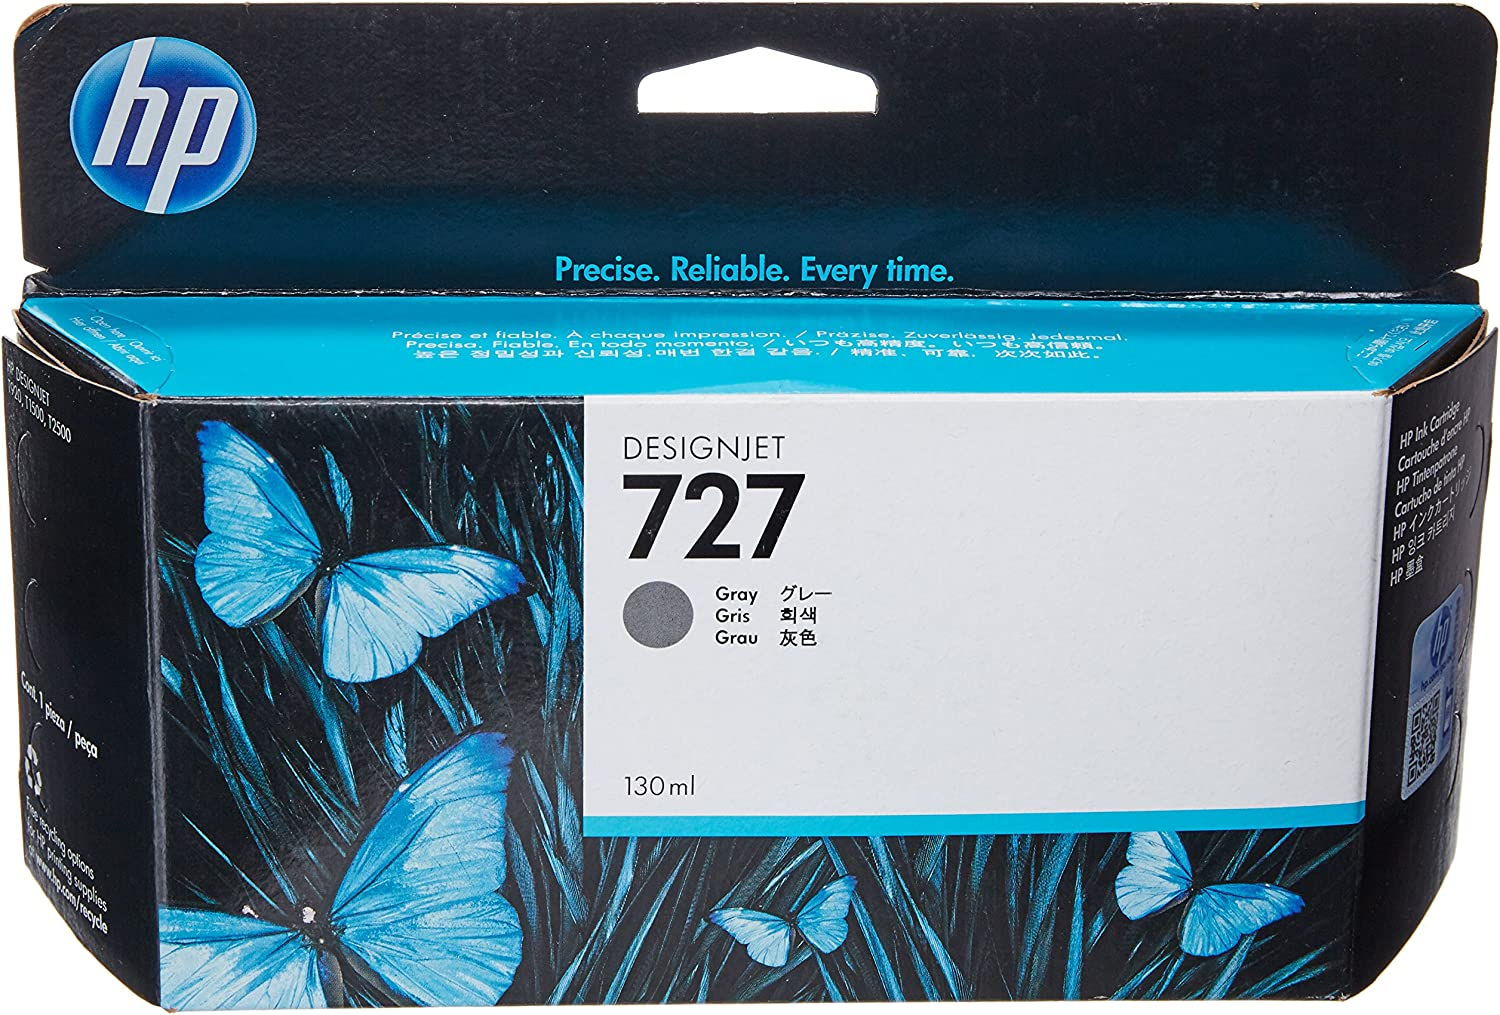 HP HEWB3P24A 727 Ink Cartridge, Gray Standard Yield,Grey